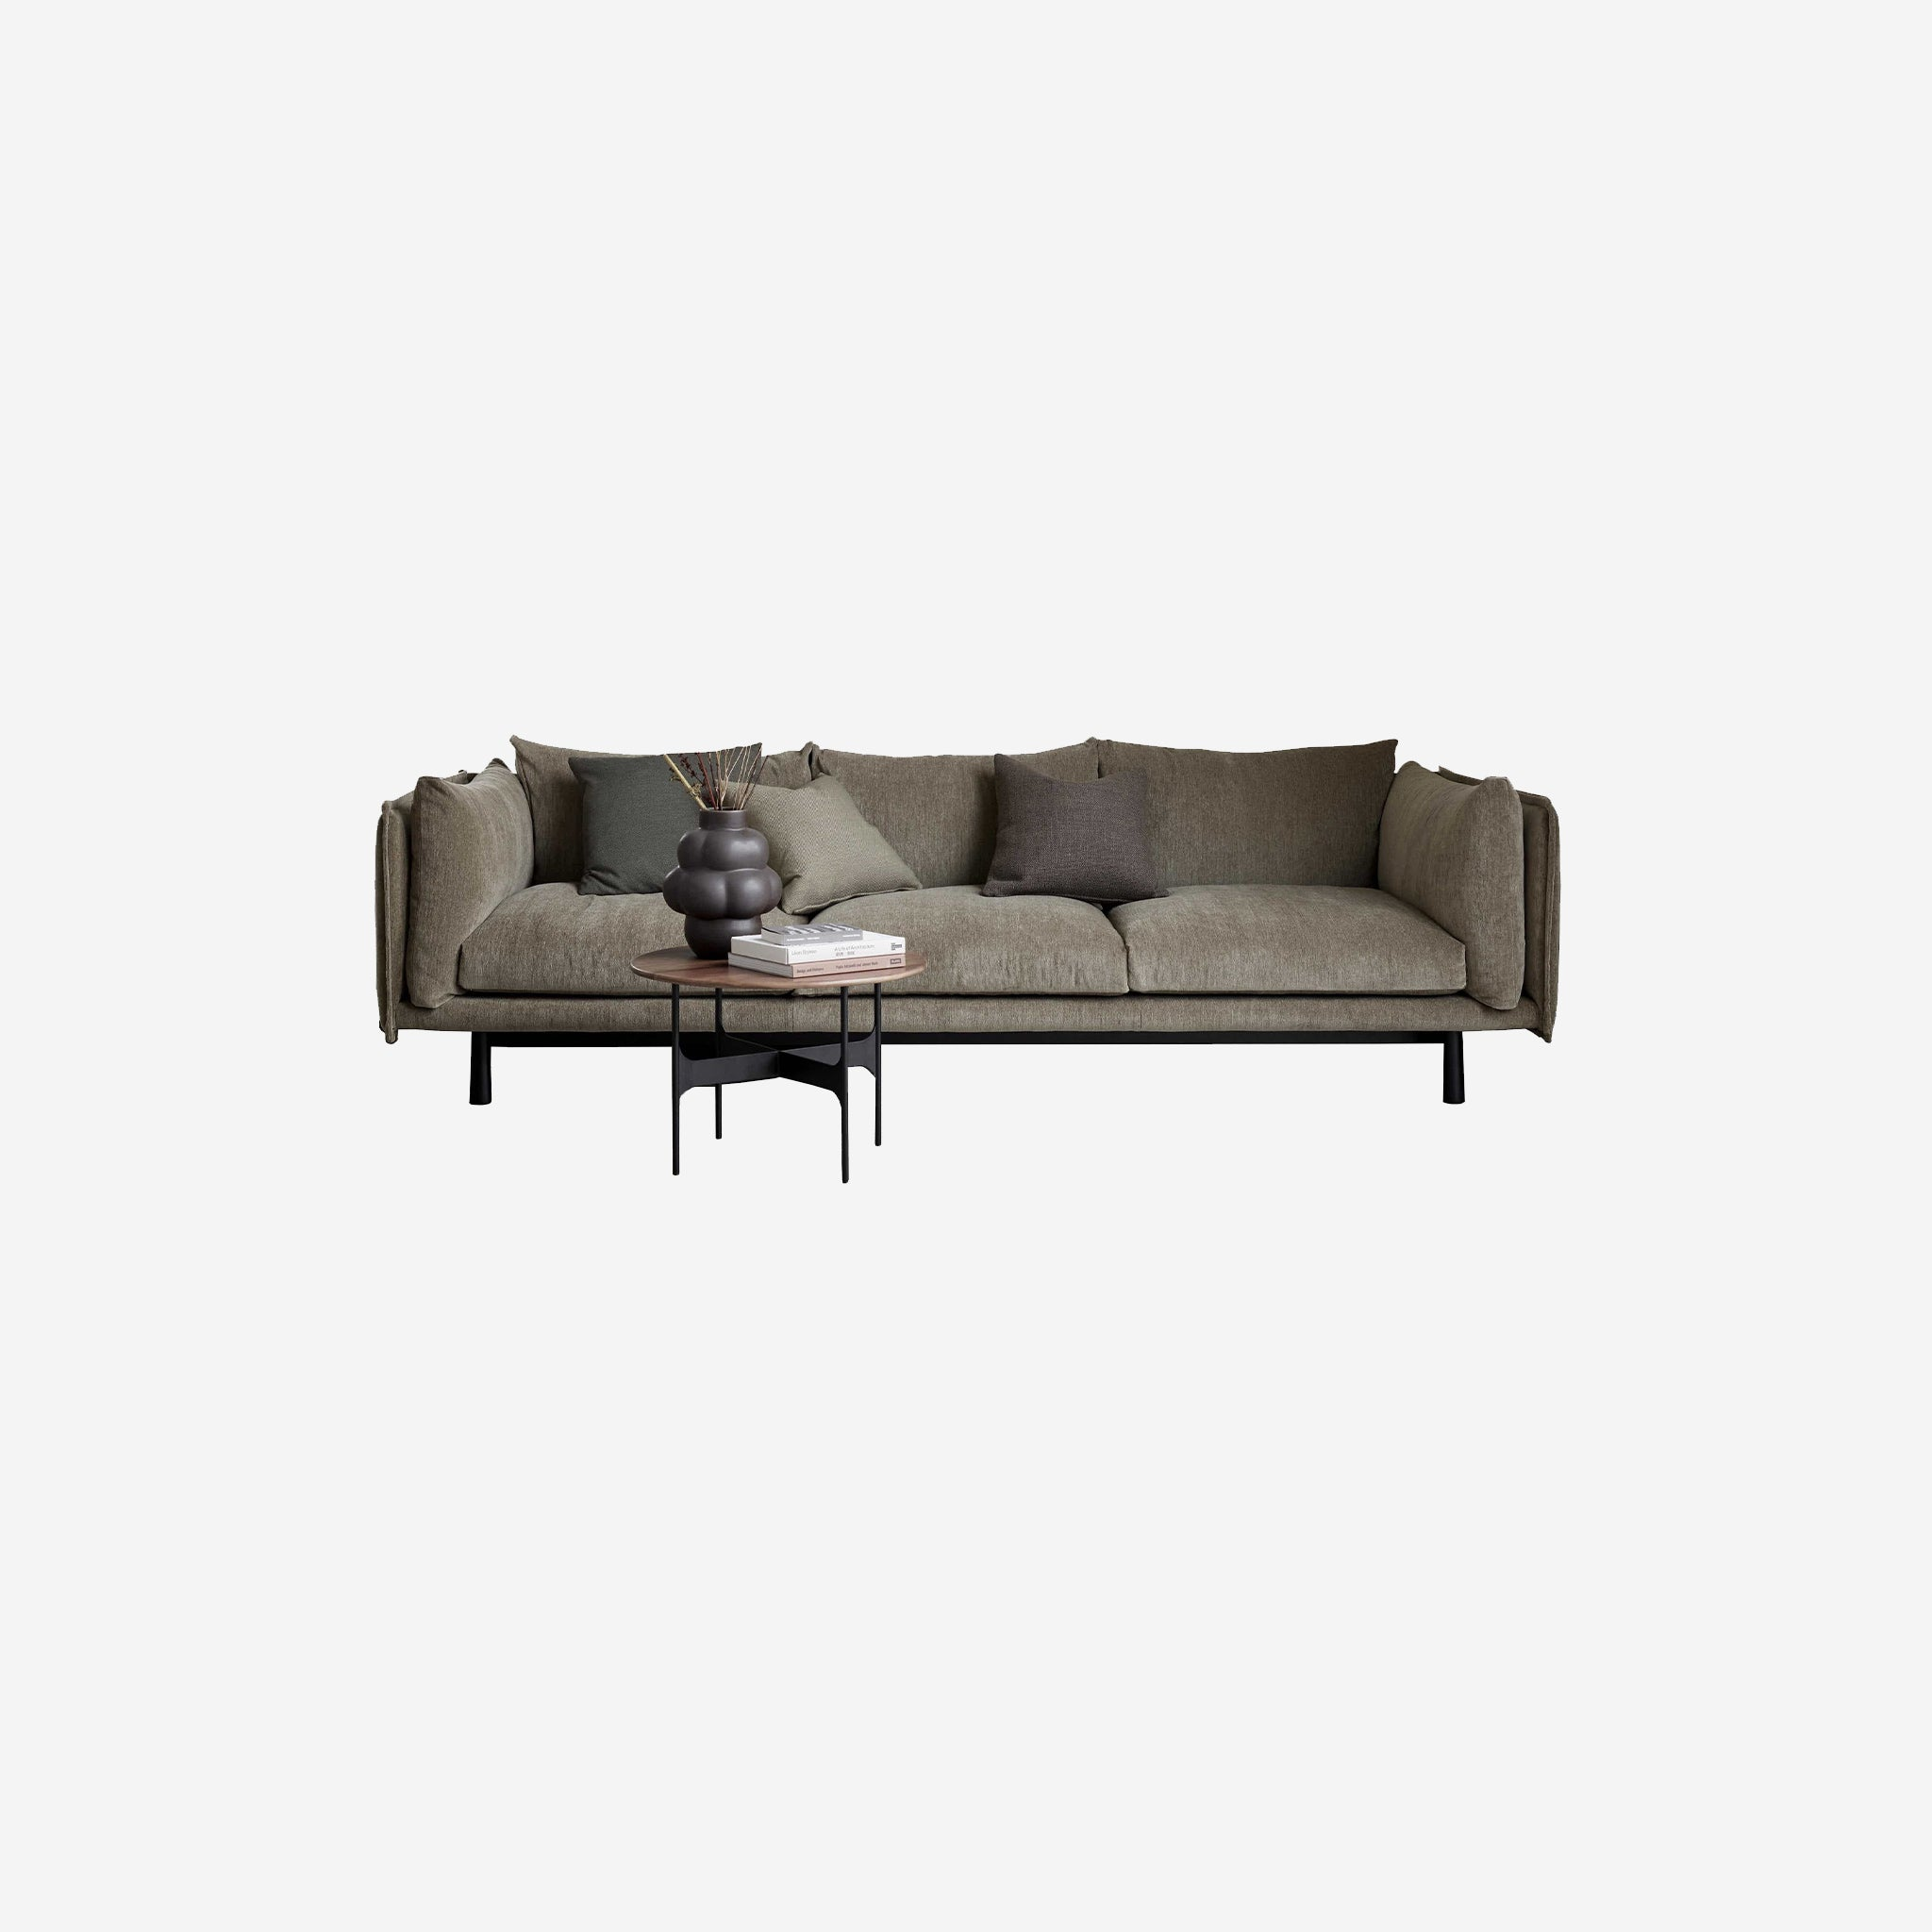 Wendelbo Sofa | Kite